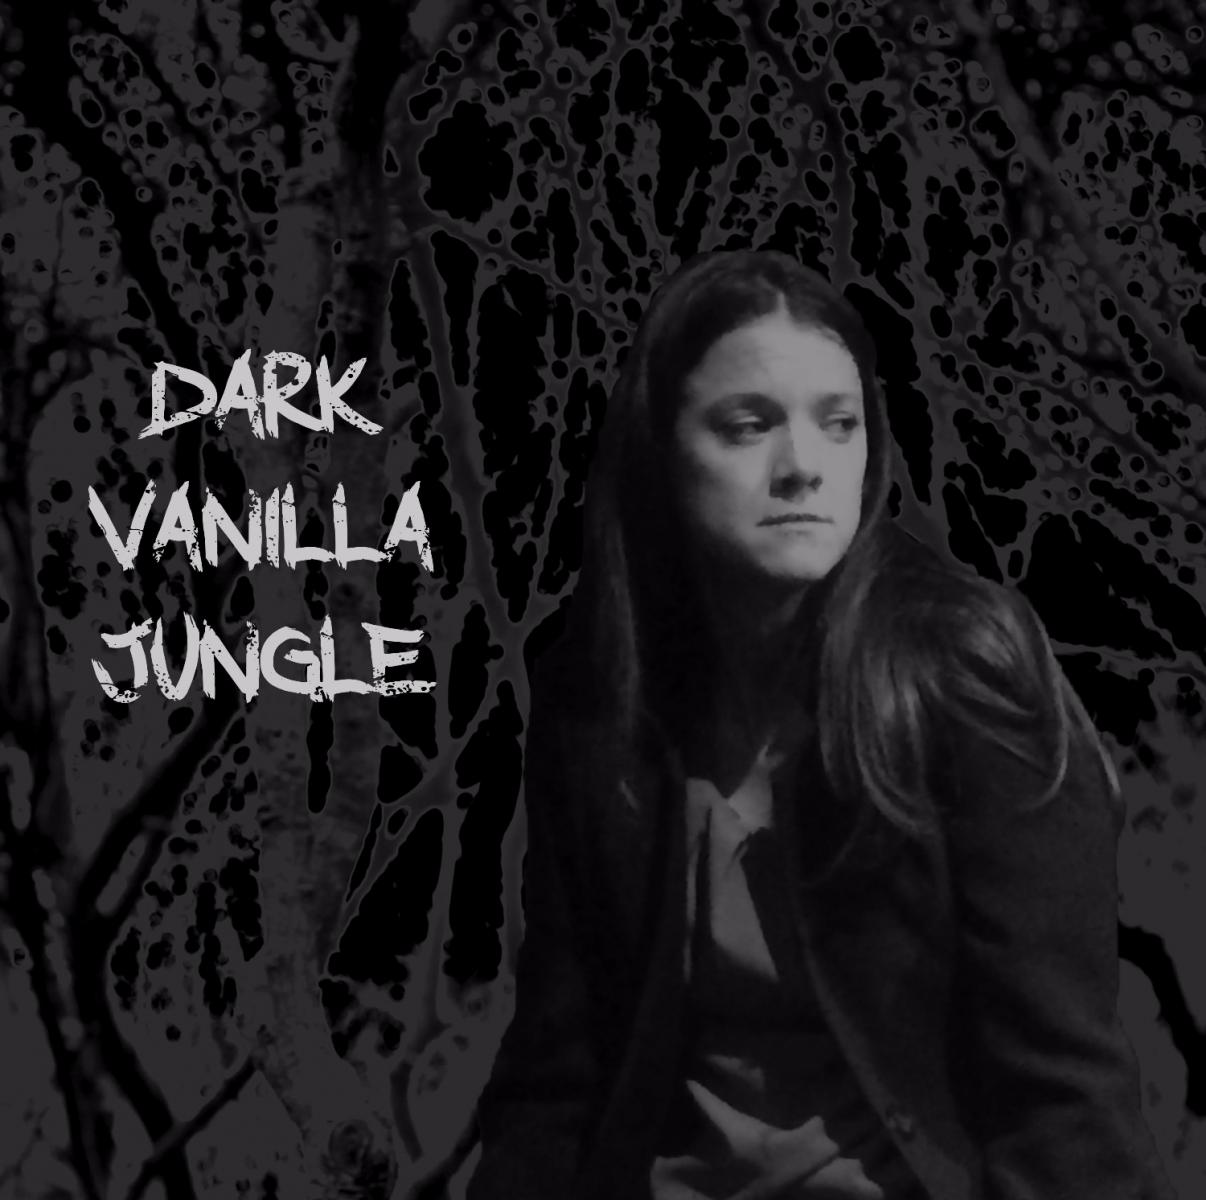 DARK VANILLA JUNGLE presented by Innovocative Theatre